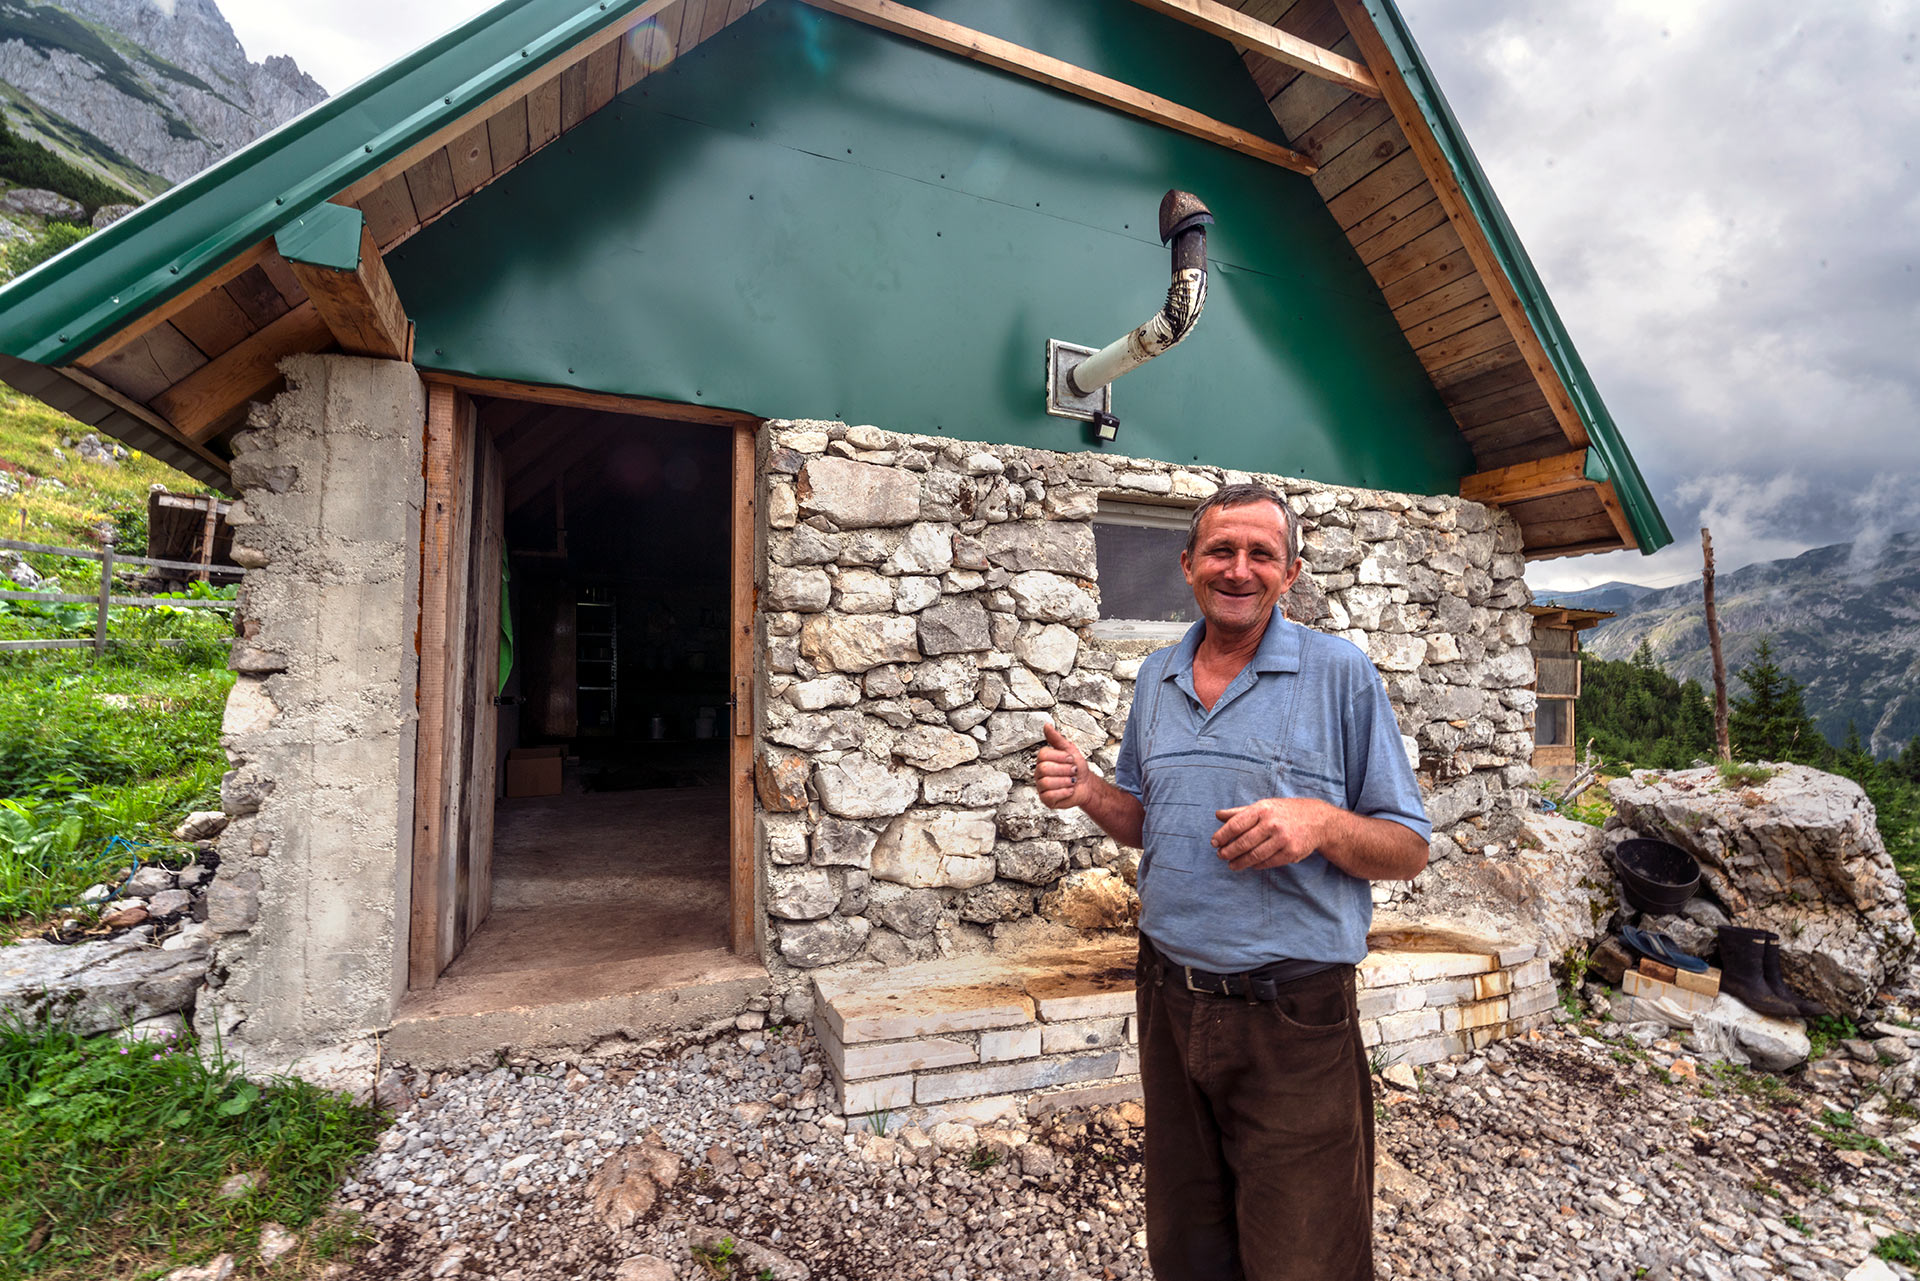 Radovan in front of his mountain home